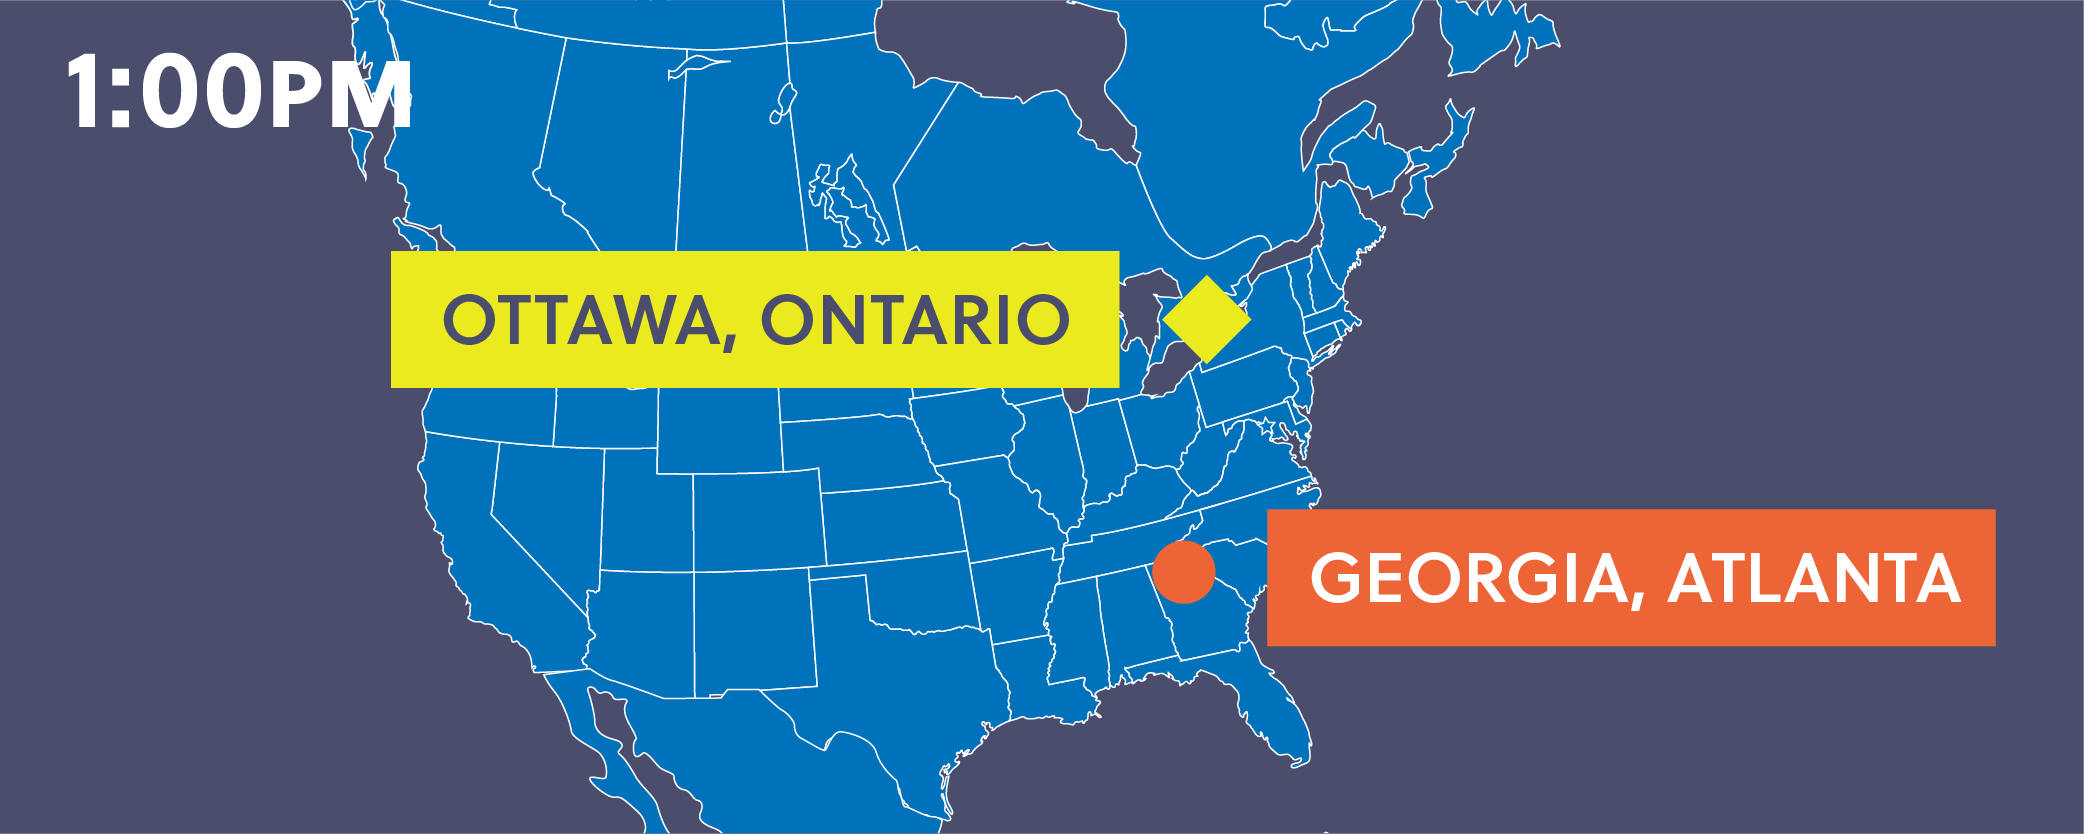 Map showing Ottawa, Ontario, and Georgia, Atlanta.